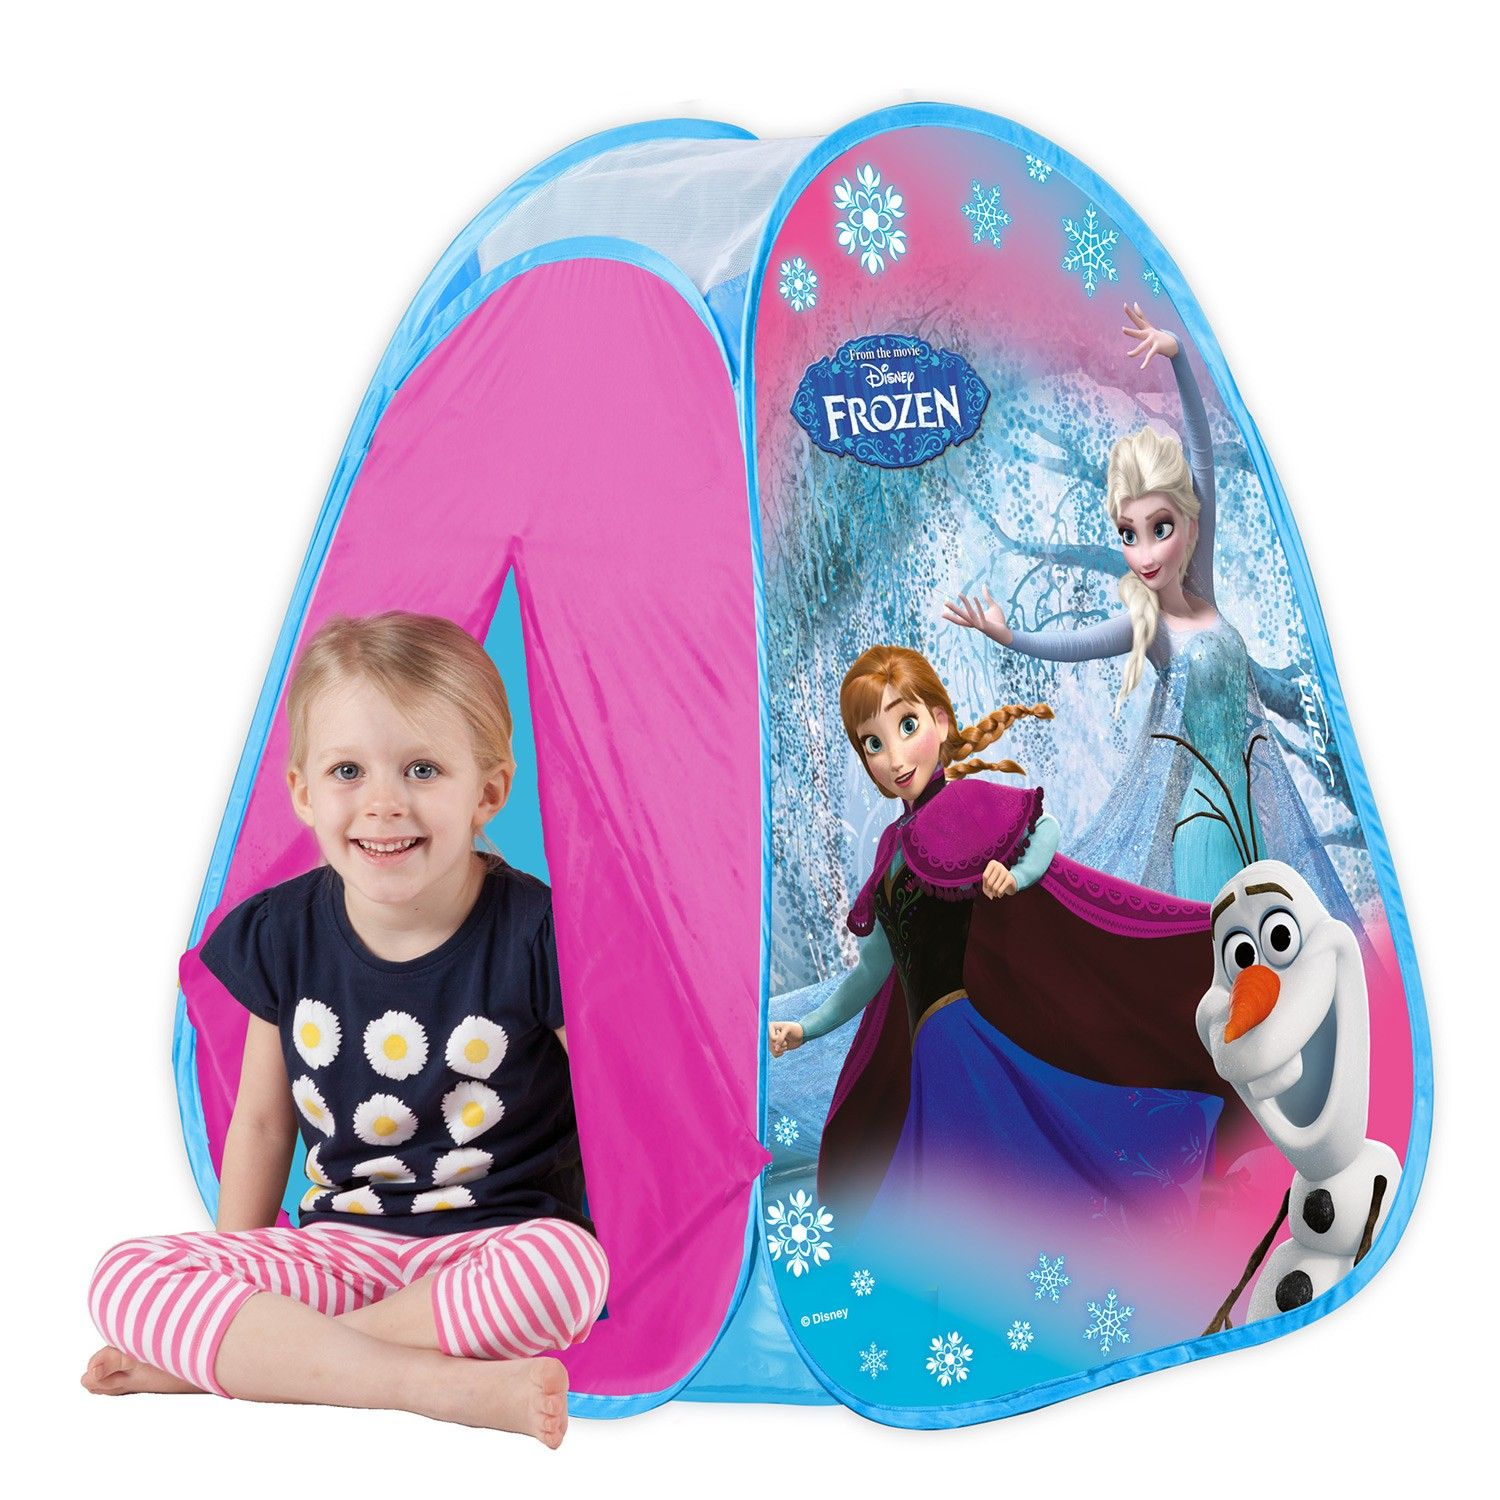 Disney Frozen Pop Up Speeltent Speeltenten Pop Up En Disney